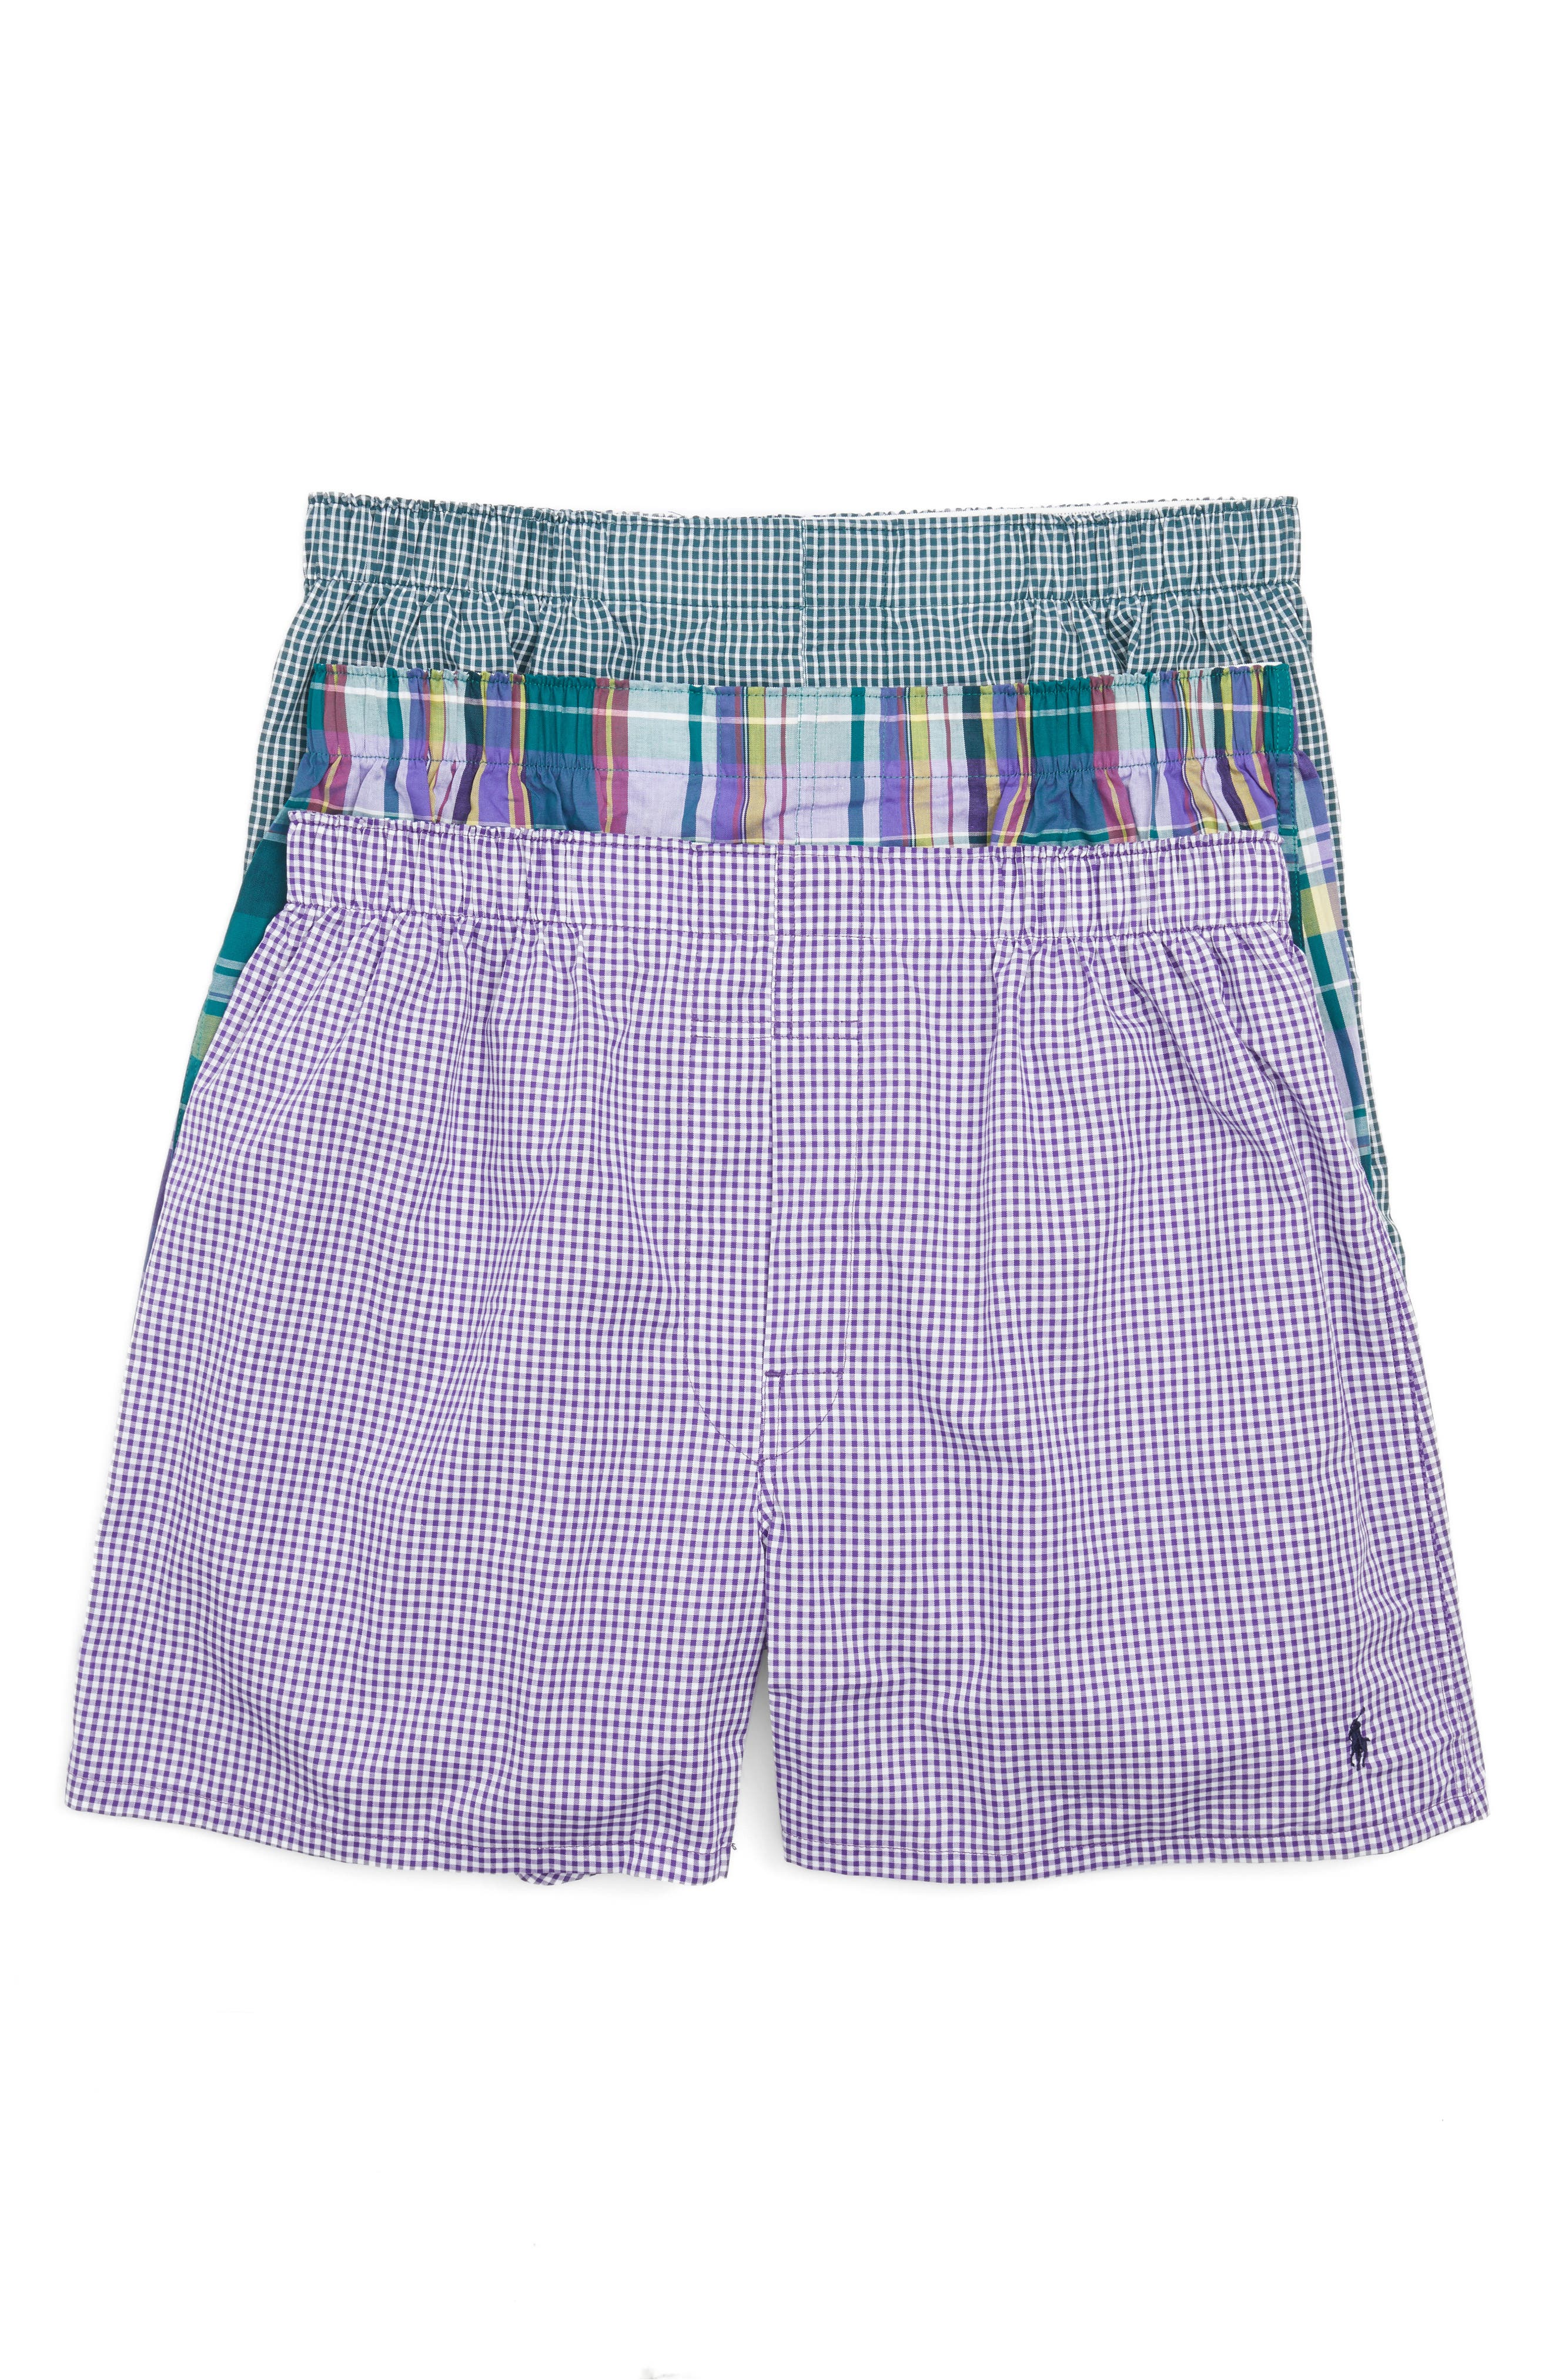 Assorted 3-Pack Woven Cotton Boxers,                             Main thumbnail 3, color,